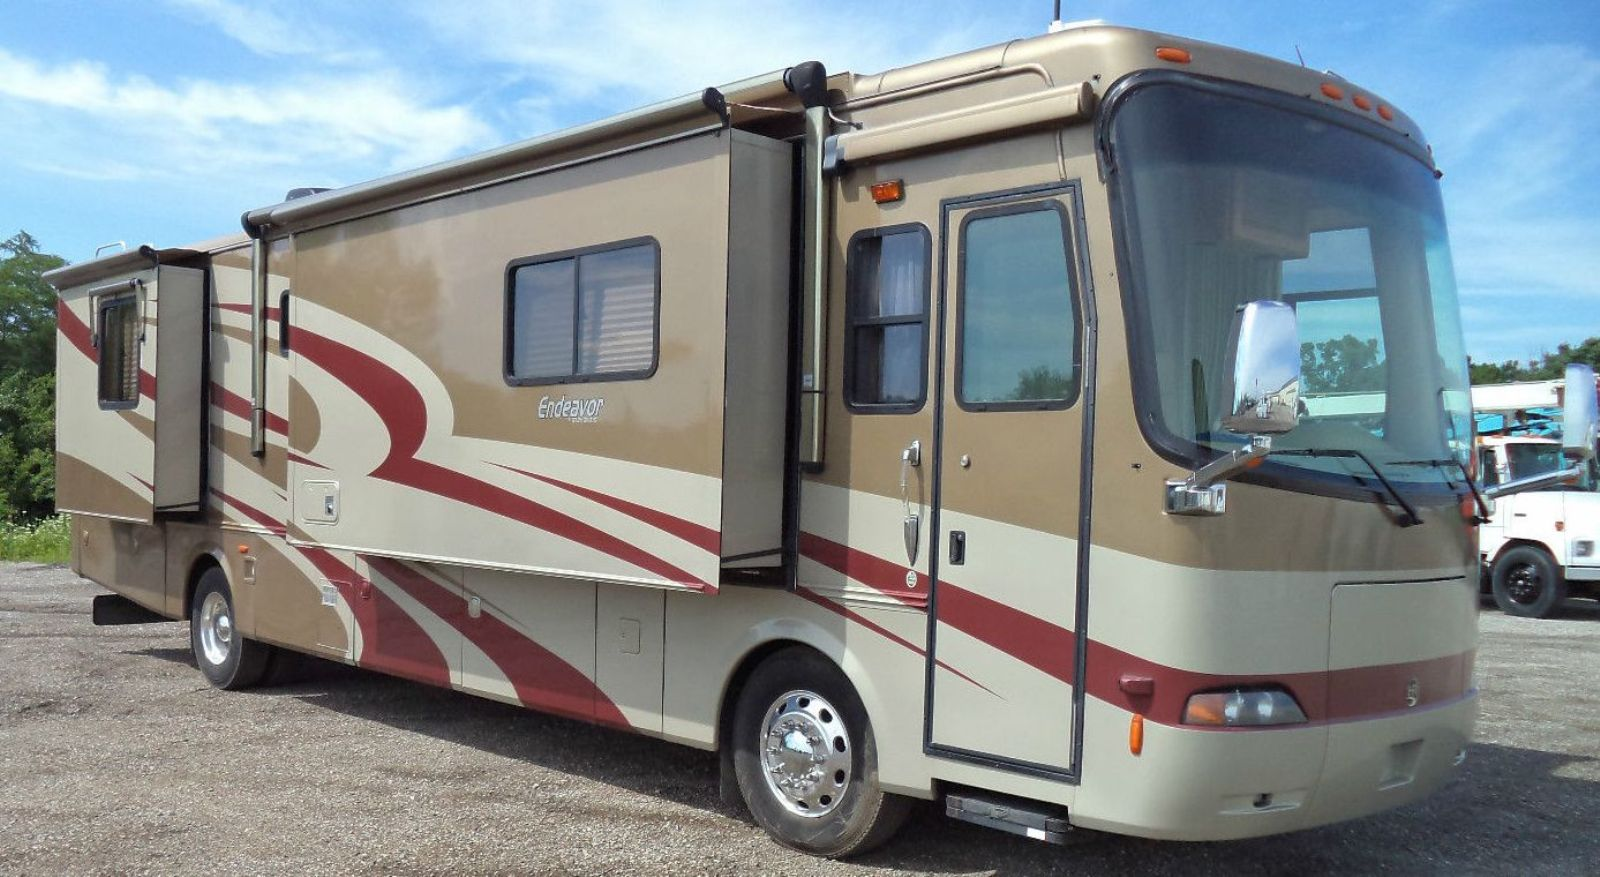 Used Motorhomes For Sale By Owner >> 2006 Holiday Rambler Endeavor 40PDQ | Used Motorhomes for sale